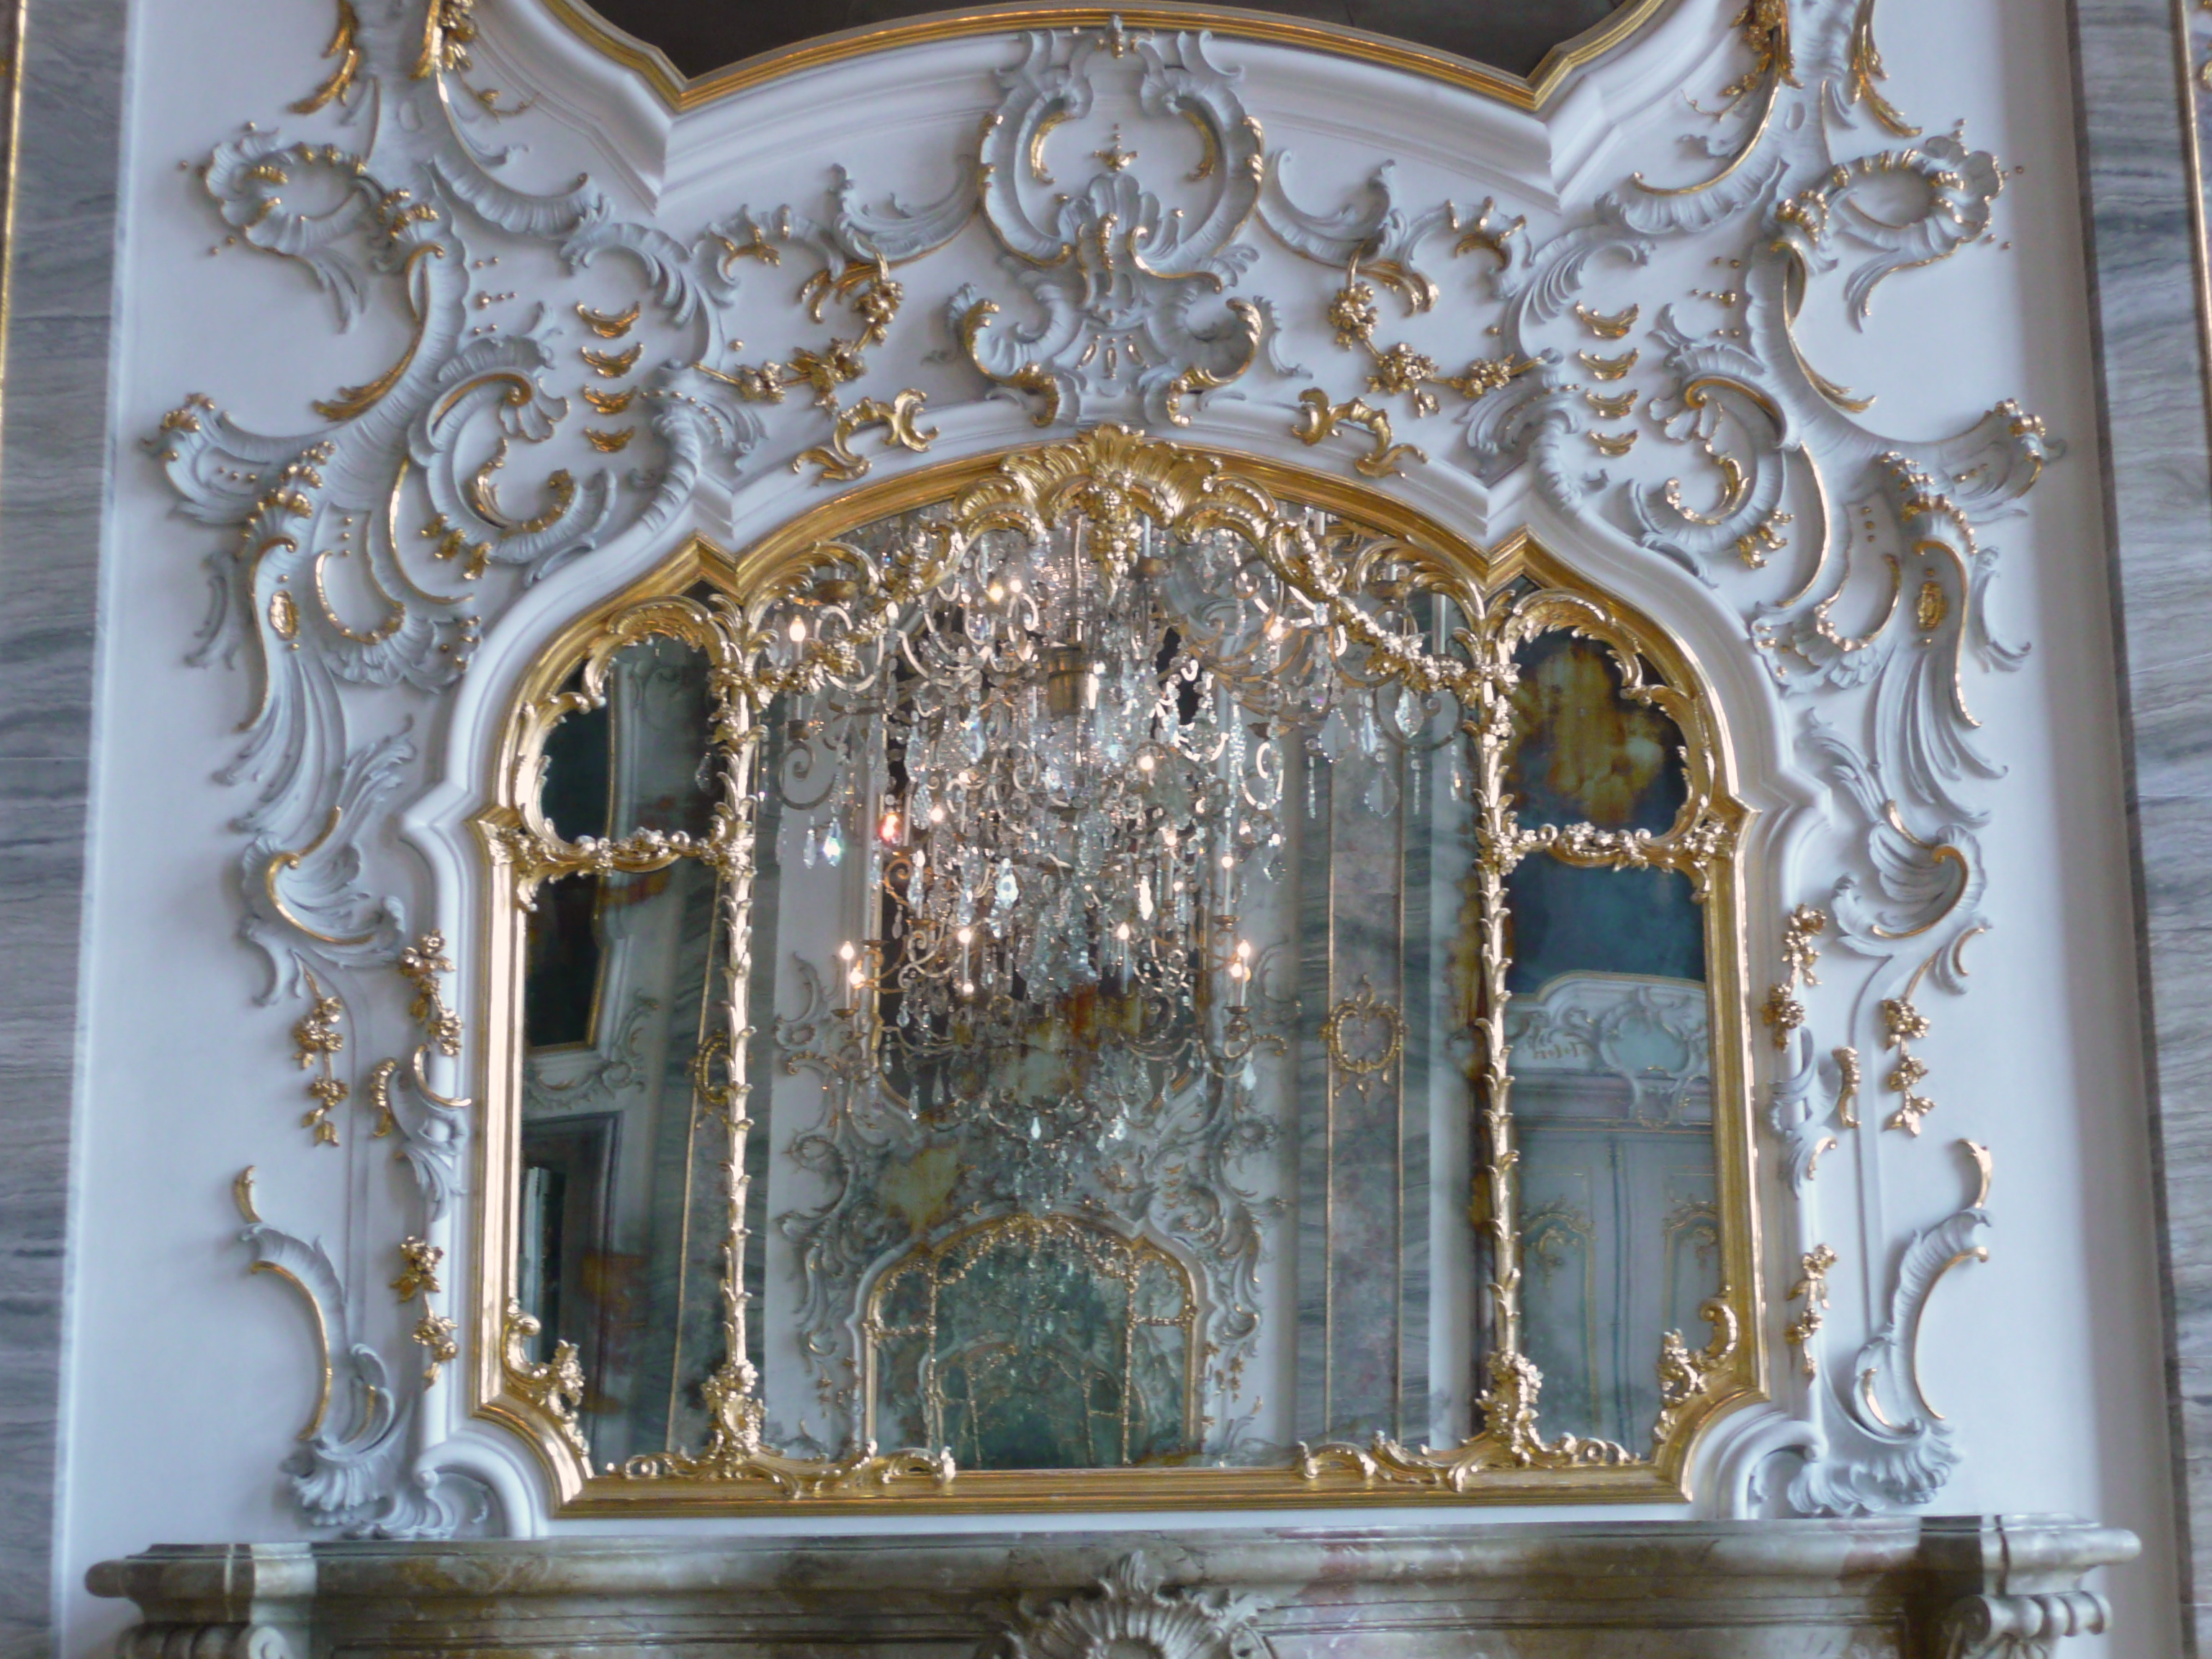 1000 images about rococo on pinterest palaces baroque and potsdam. Black Bedroom Furniture Sets. Home Design Ideas